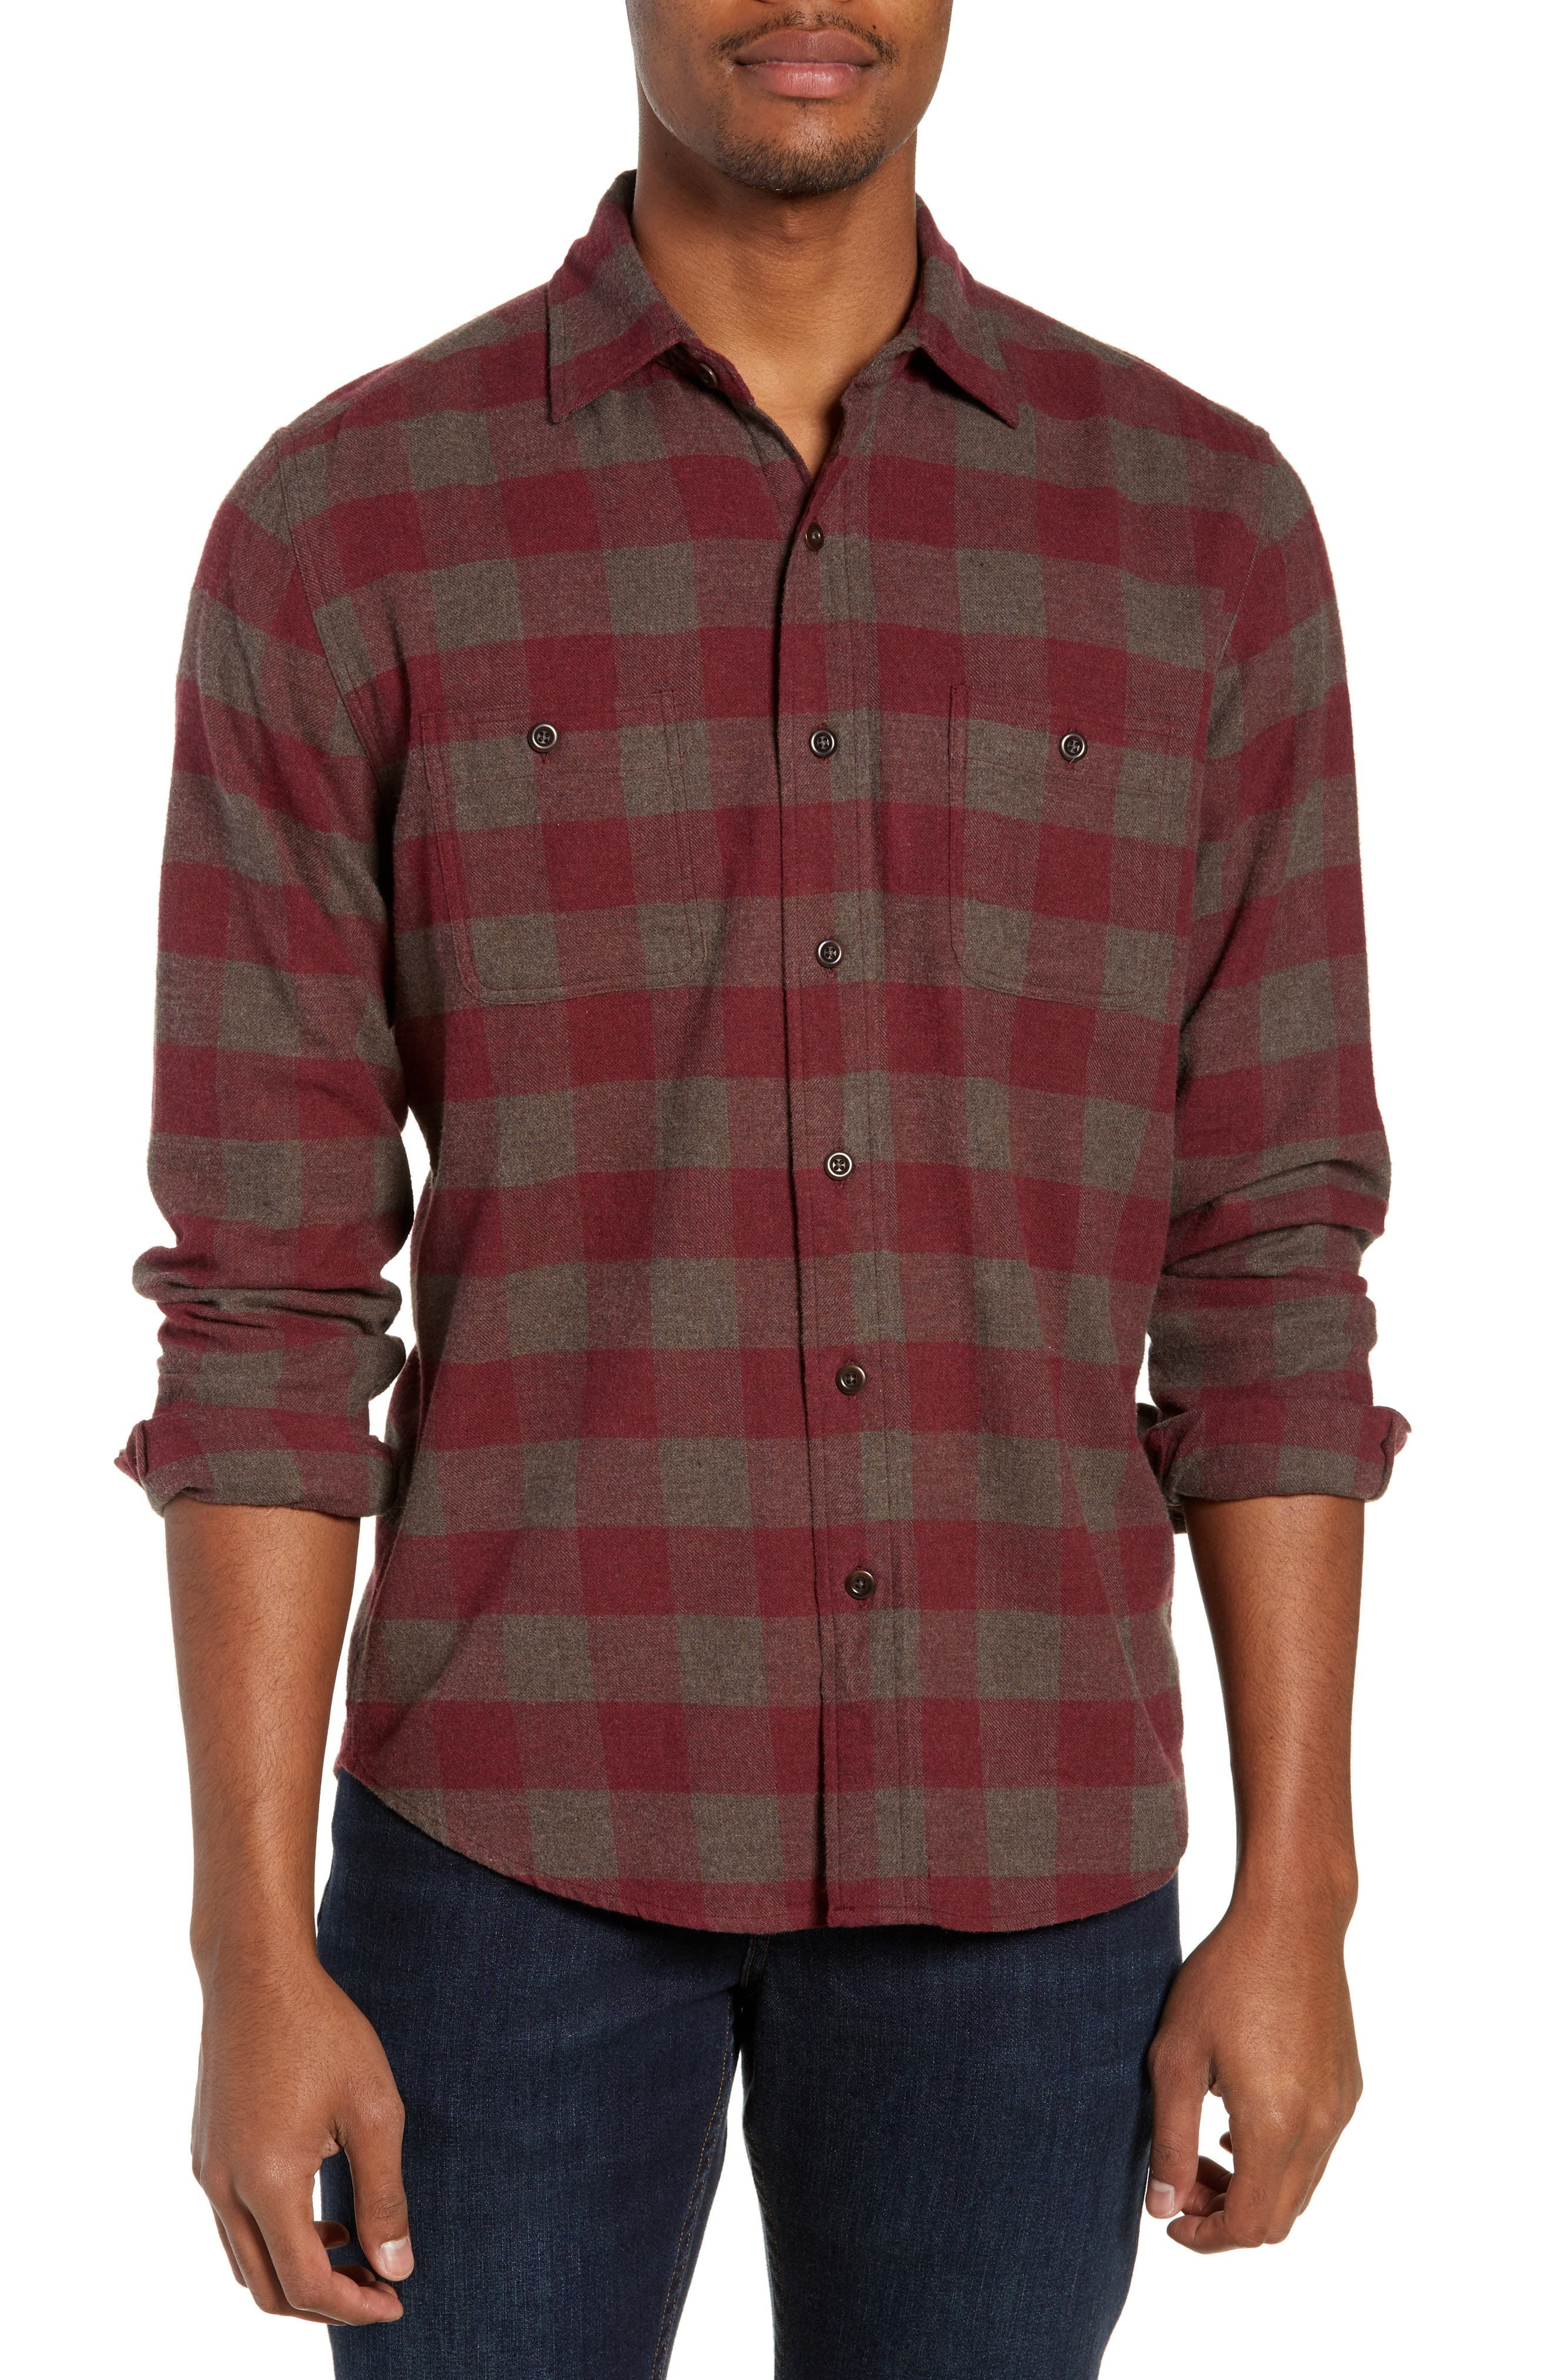 Seasons Regular Fit Check Flannel Shirt,                             Main thumbnail 1, color,                             WINE CHESTNUT BUFFALO